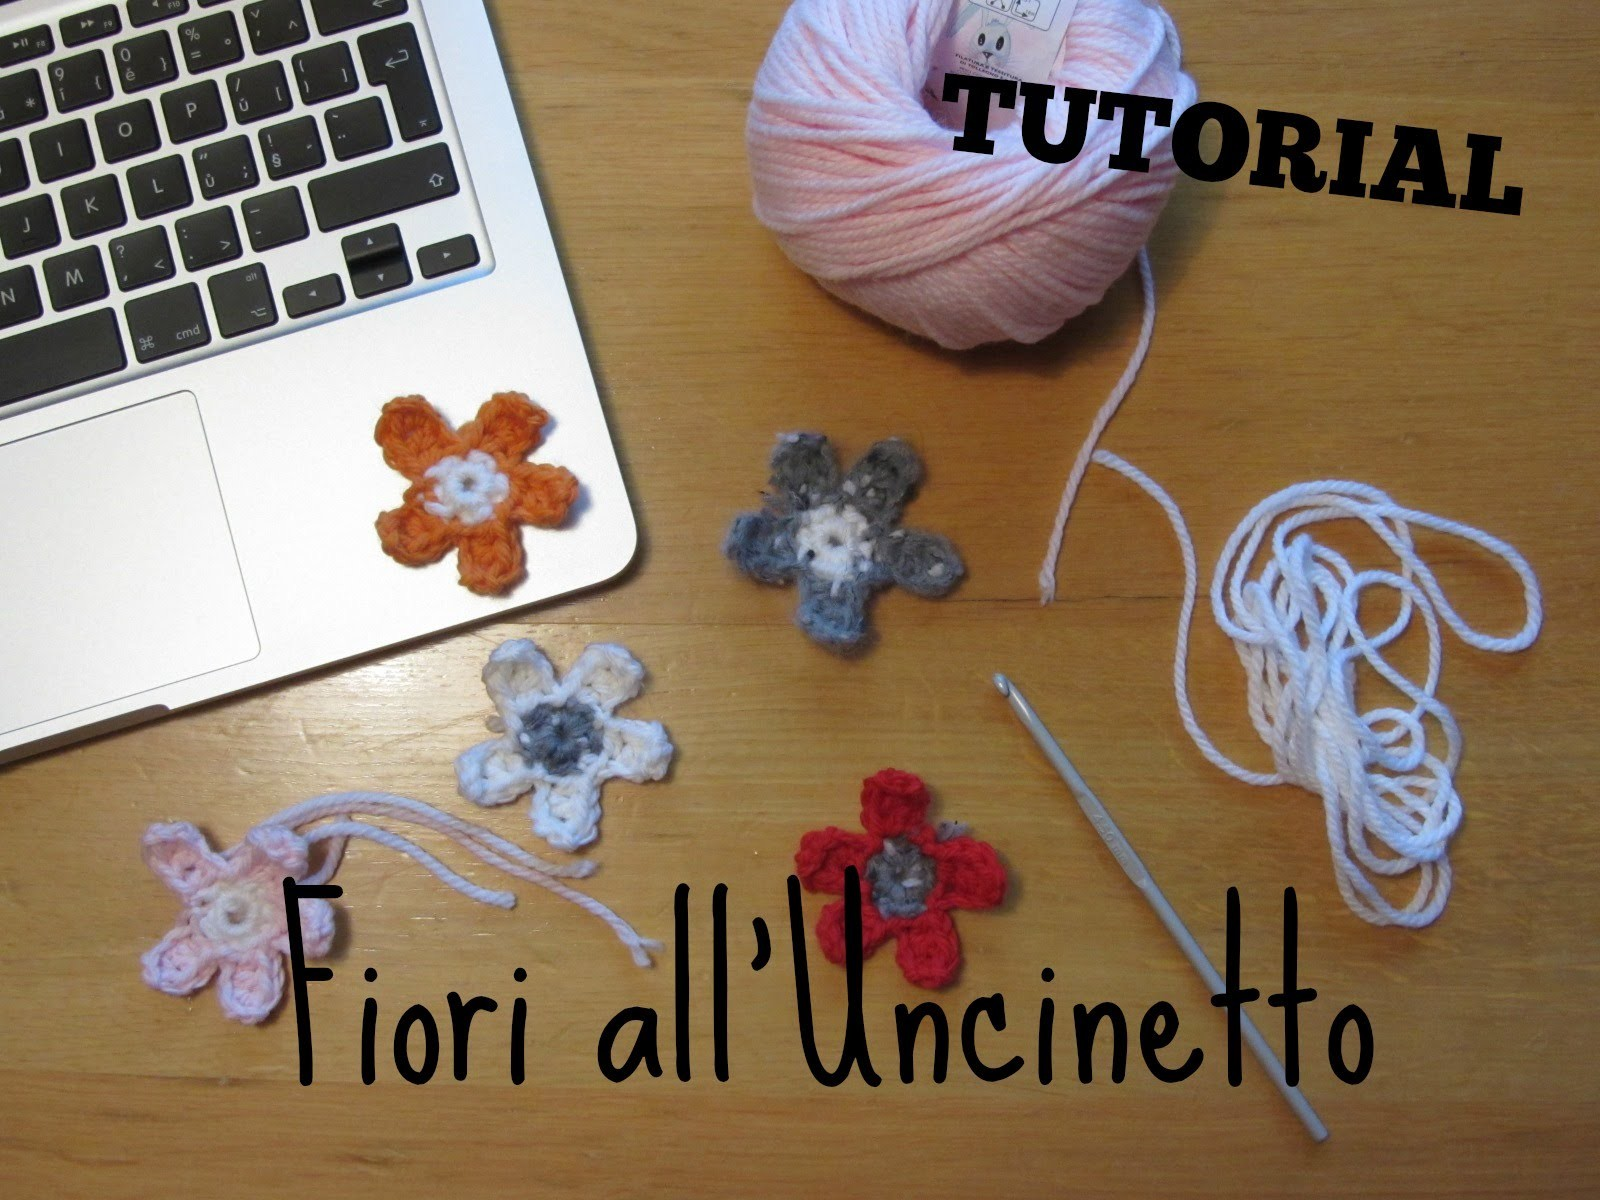 Tutorial all'Uncinetto - Fiori